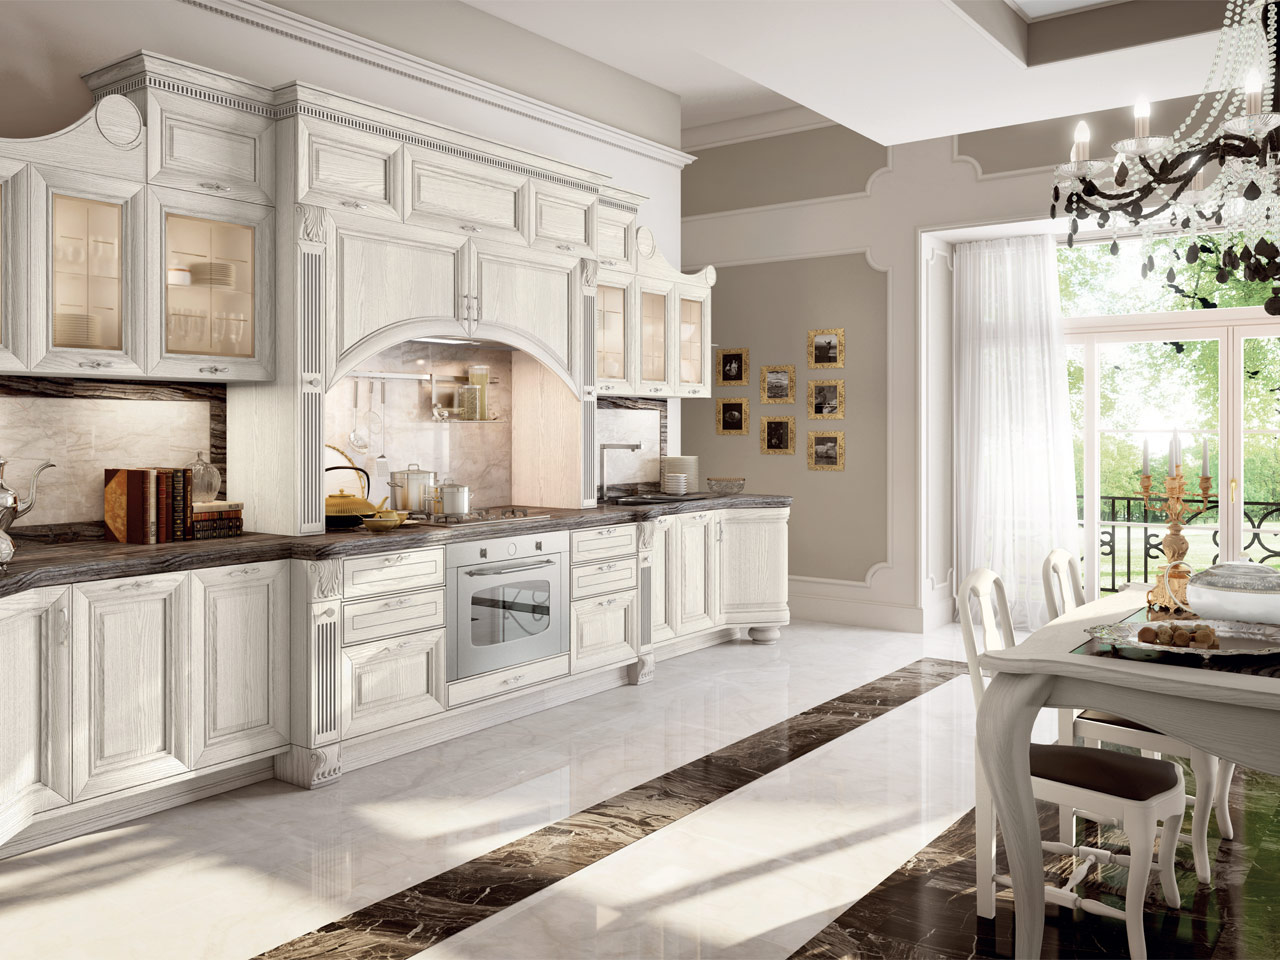 PANTHEON Lacquered kitchen by Cucine Lube